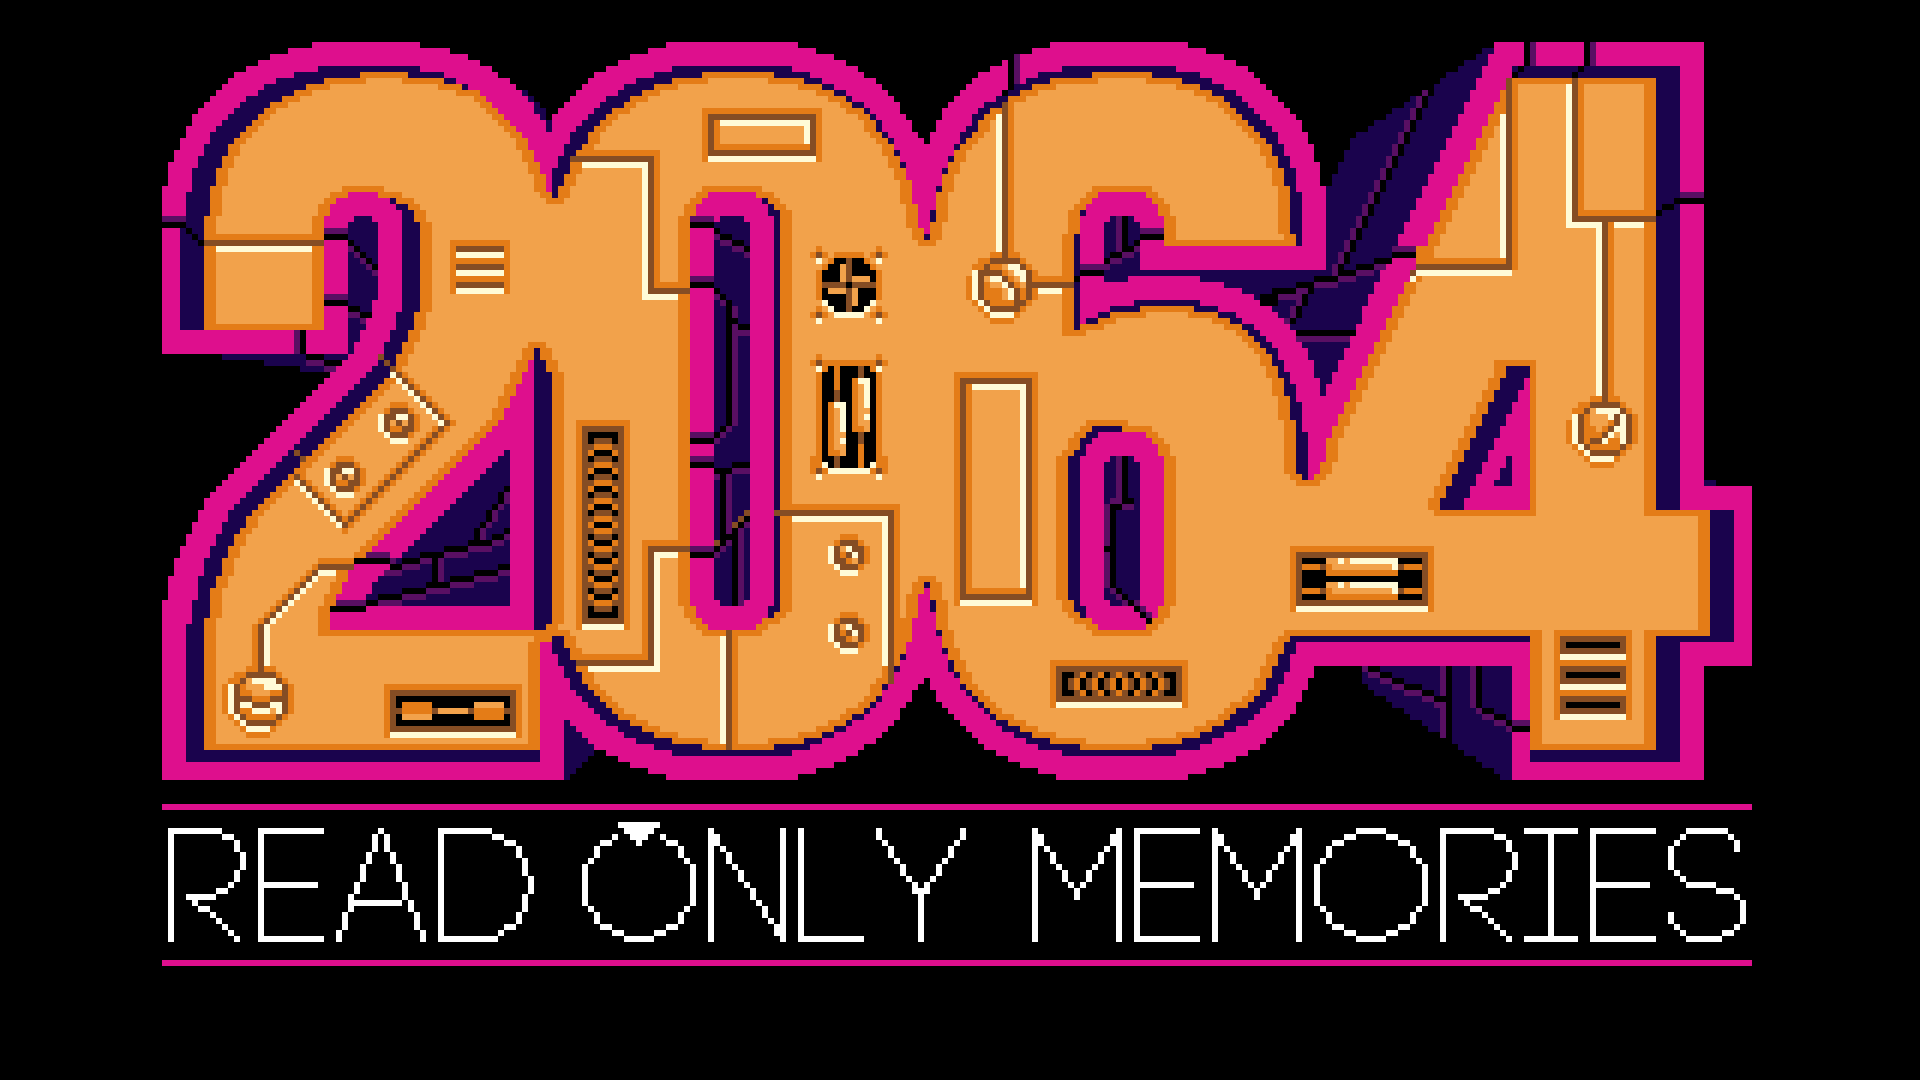 2064: Read Only Memories Releases on PS4 and Vita in August